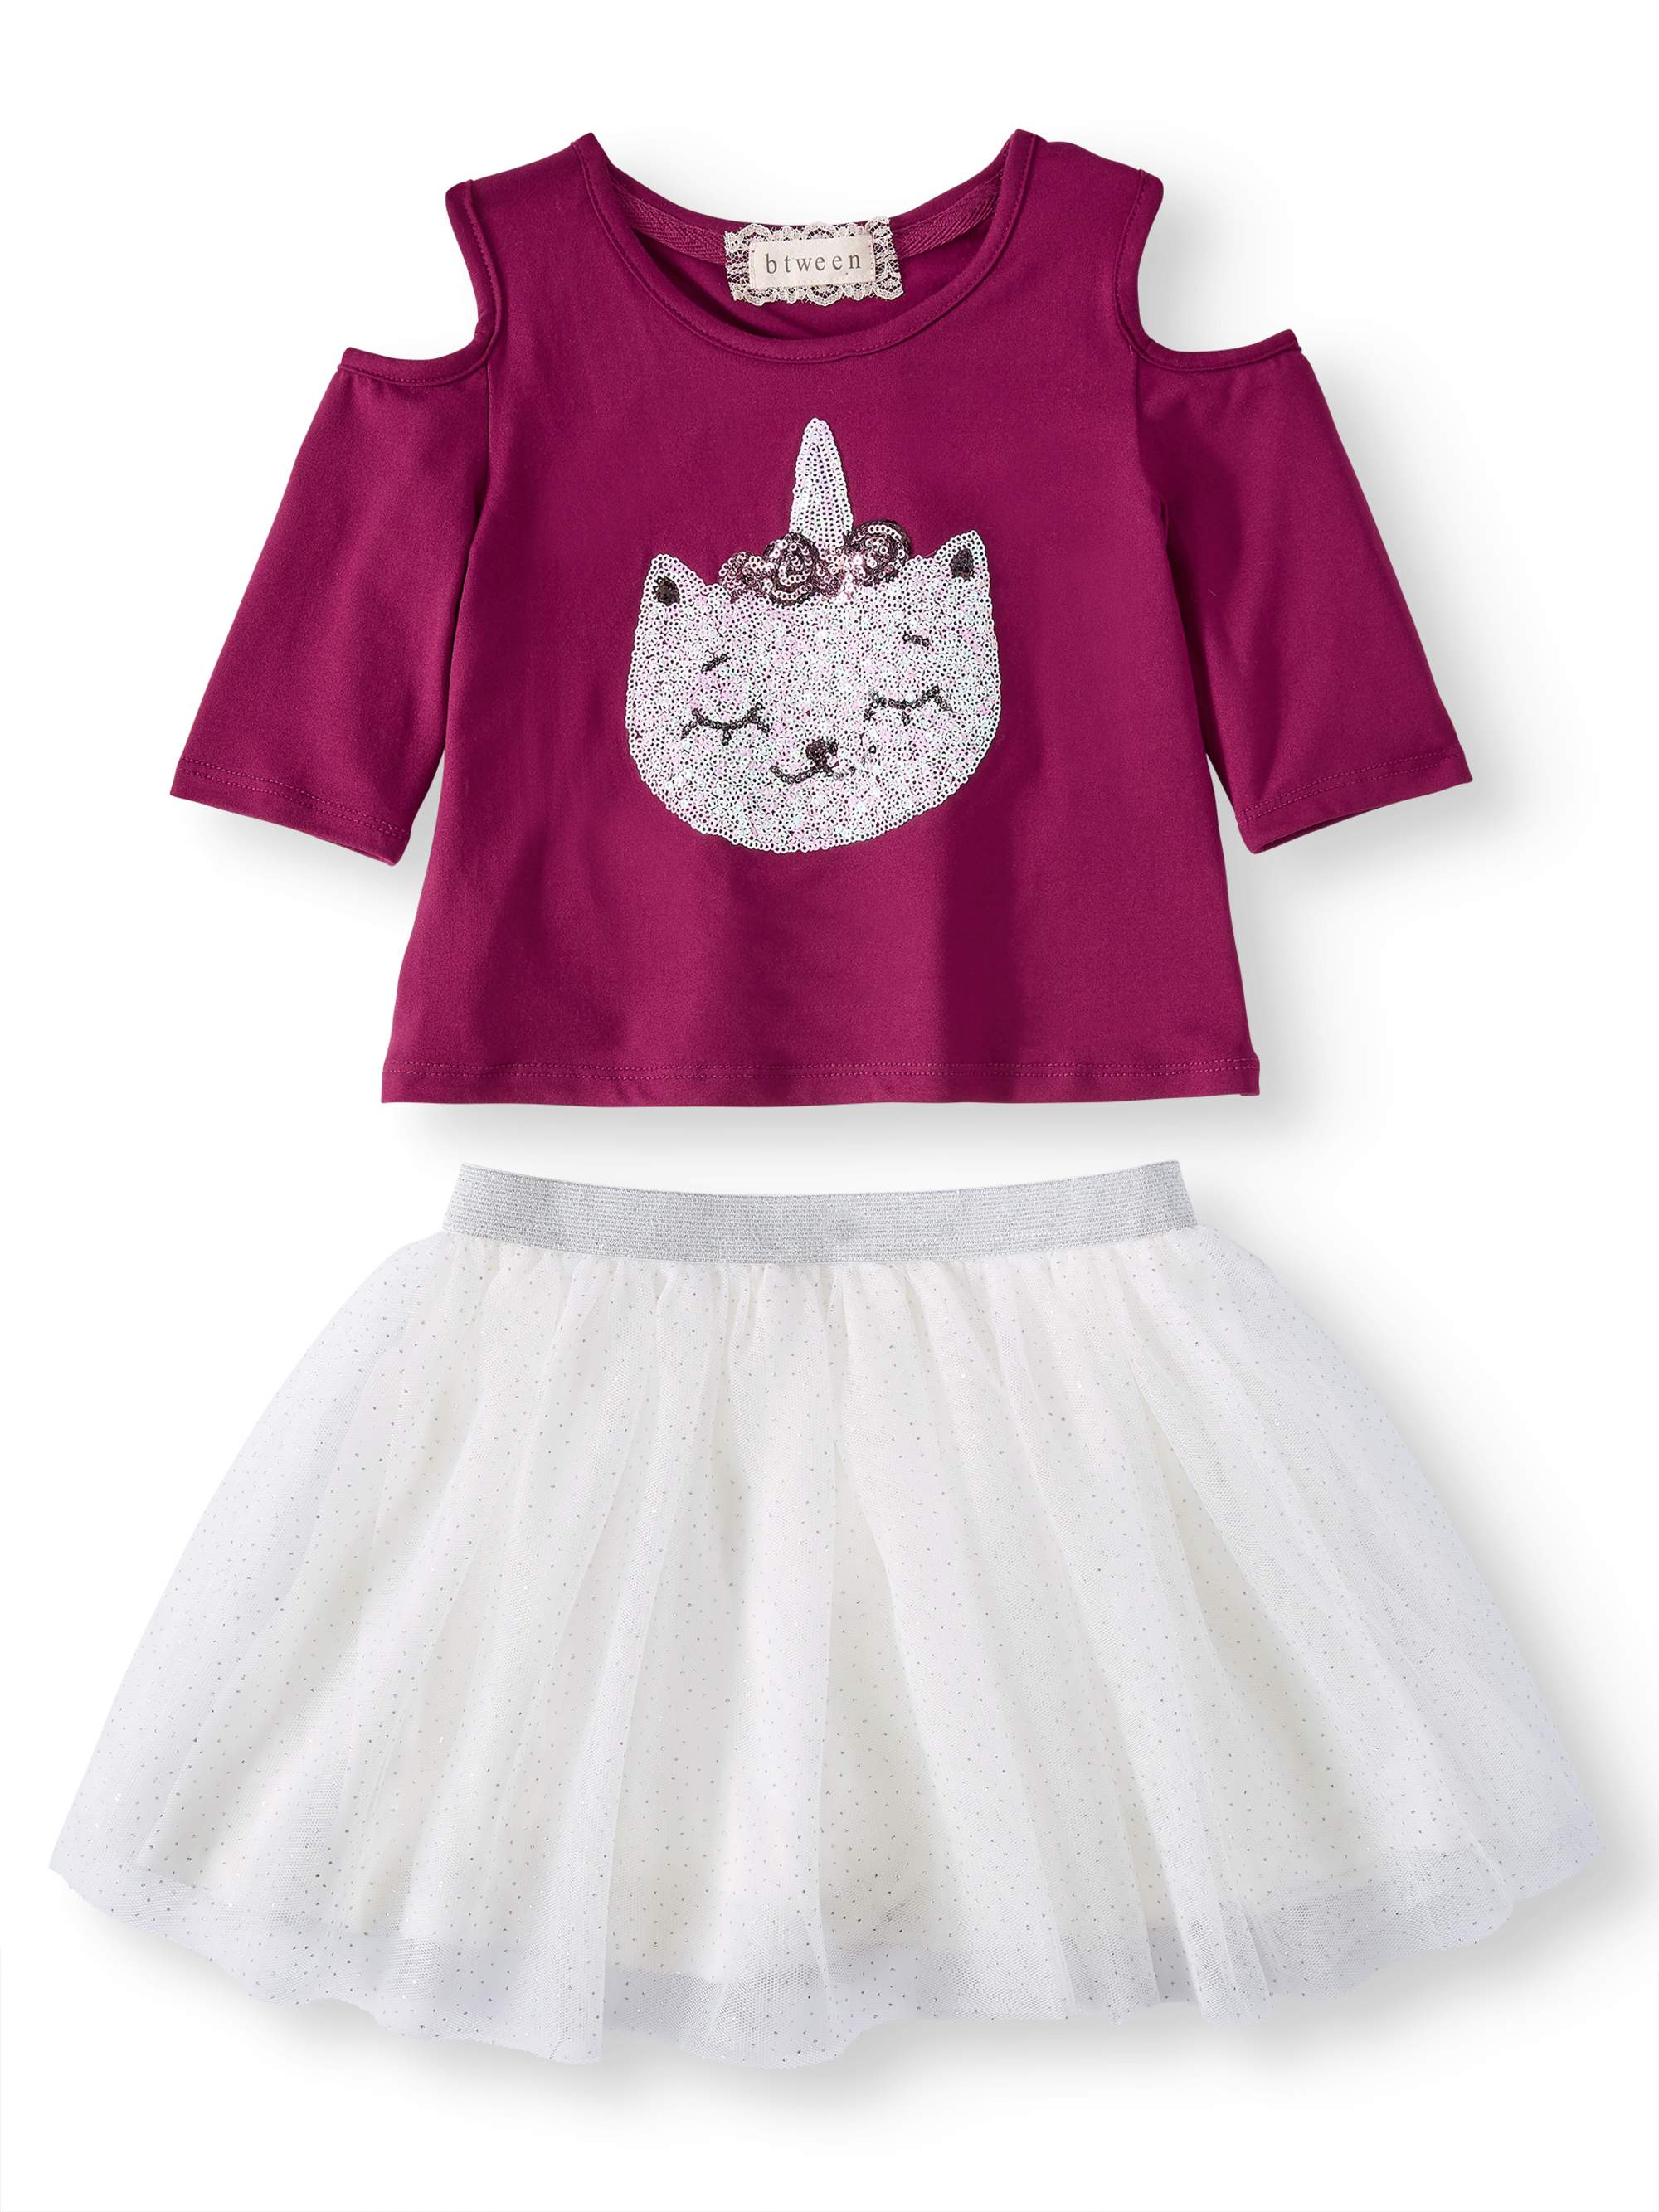 Sequin Caticorn Cold Shoulder Tee and Mesh Tutu Skirt, 2-Piece Outfit Set (Little Girls and Big Girls)